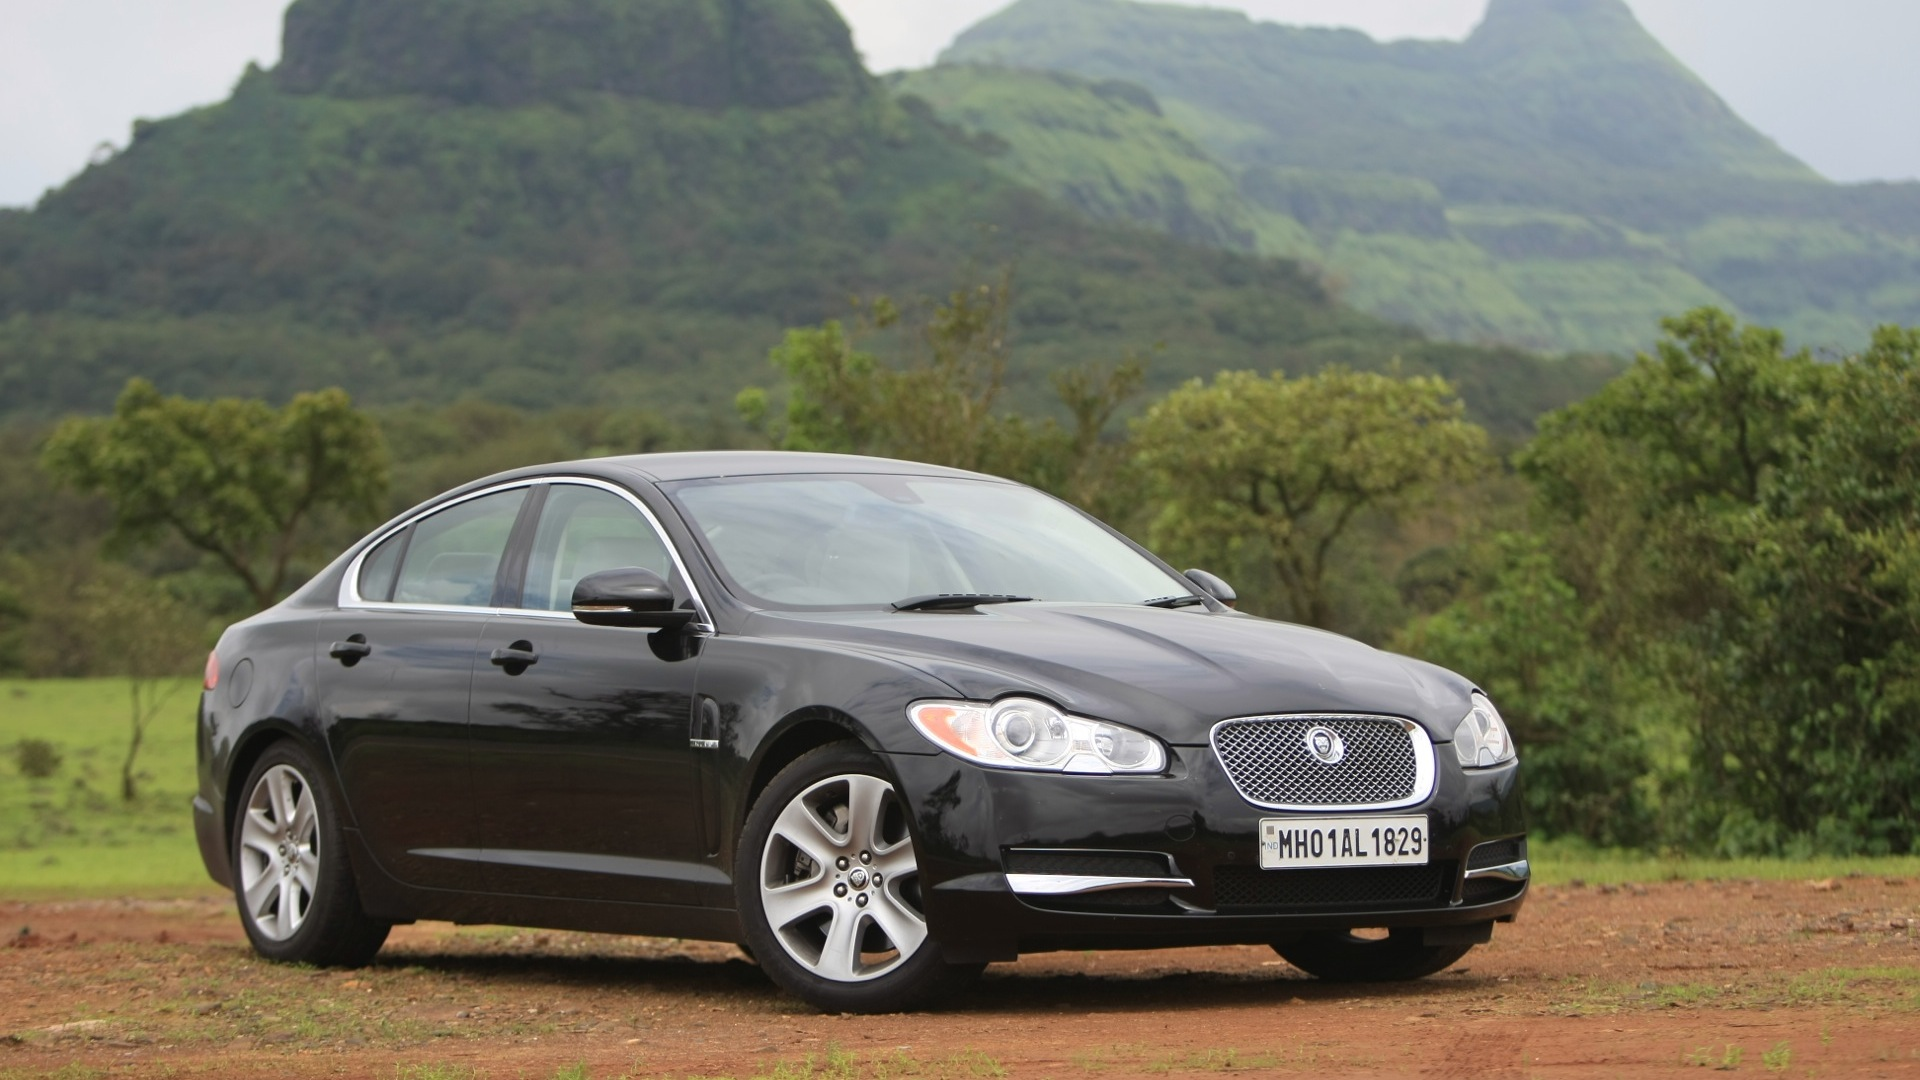 jaguar xf 2017 pure diesel price mileage reviews specification gallery overdrive. Black Bedroom Furniture Sets. Home Design Ideas